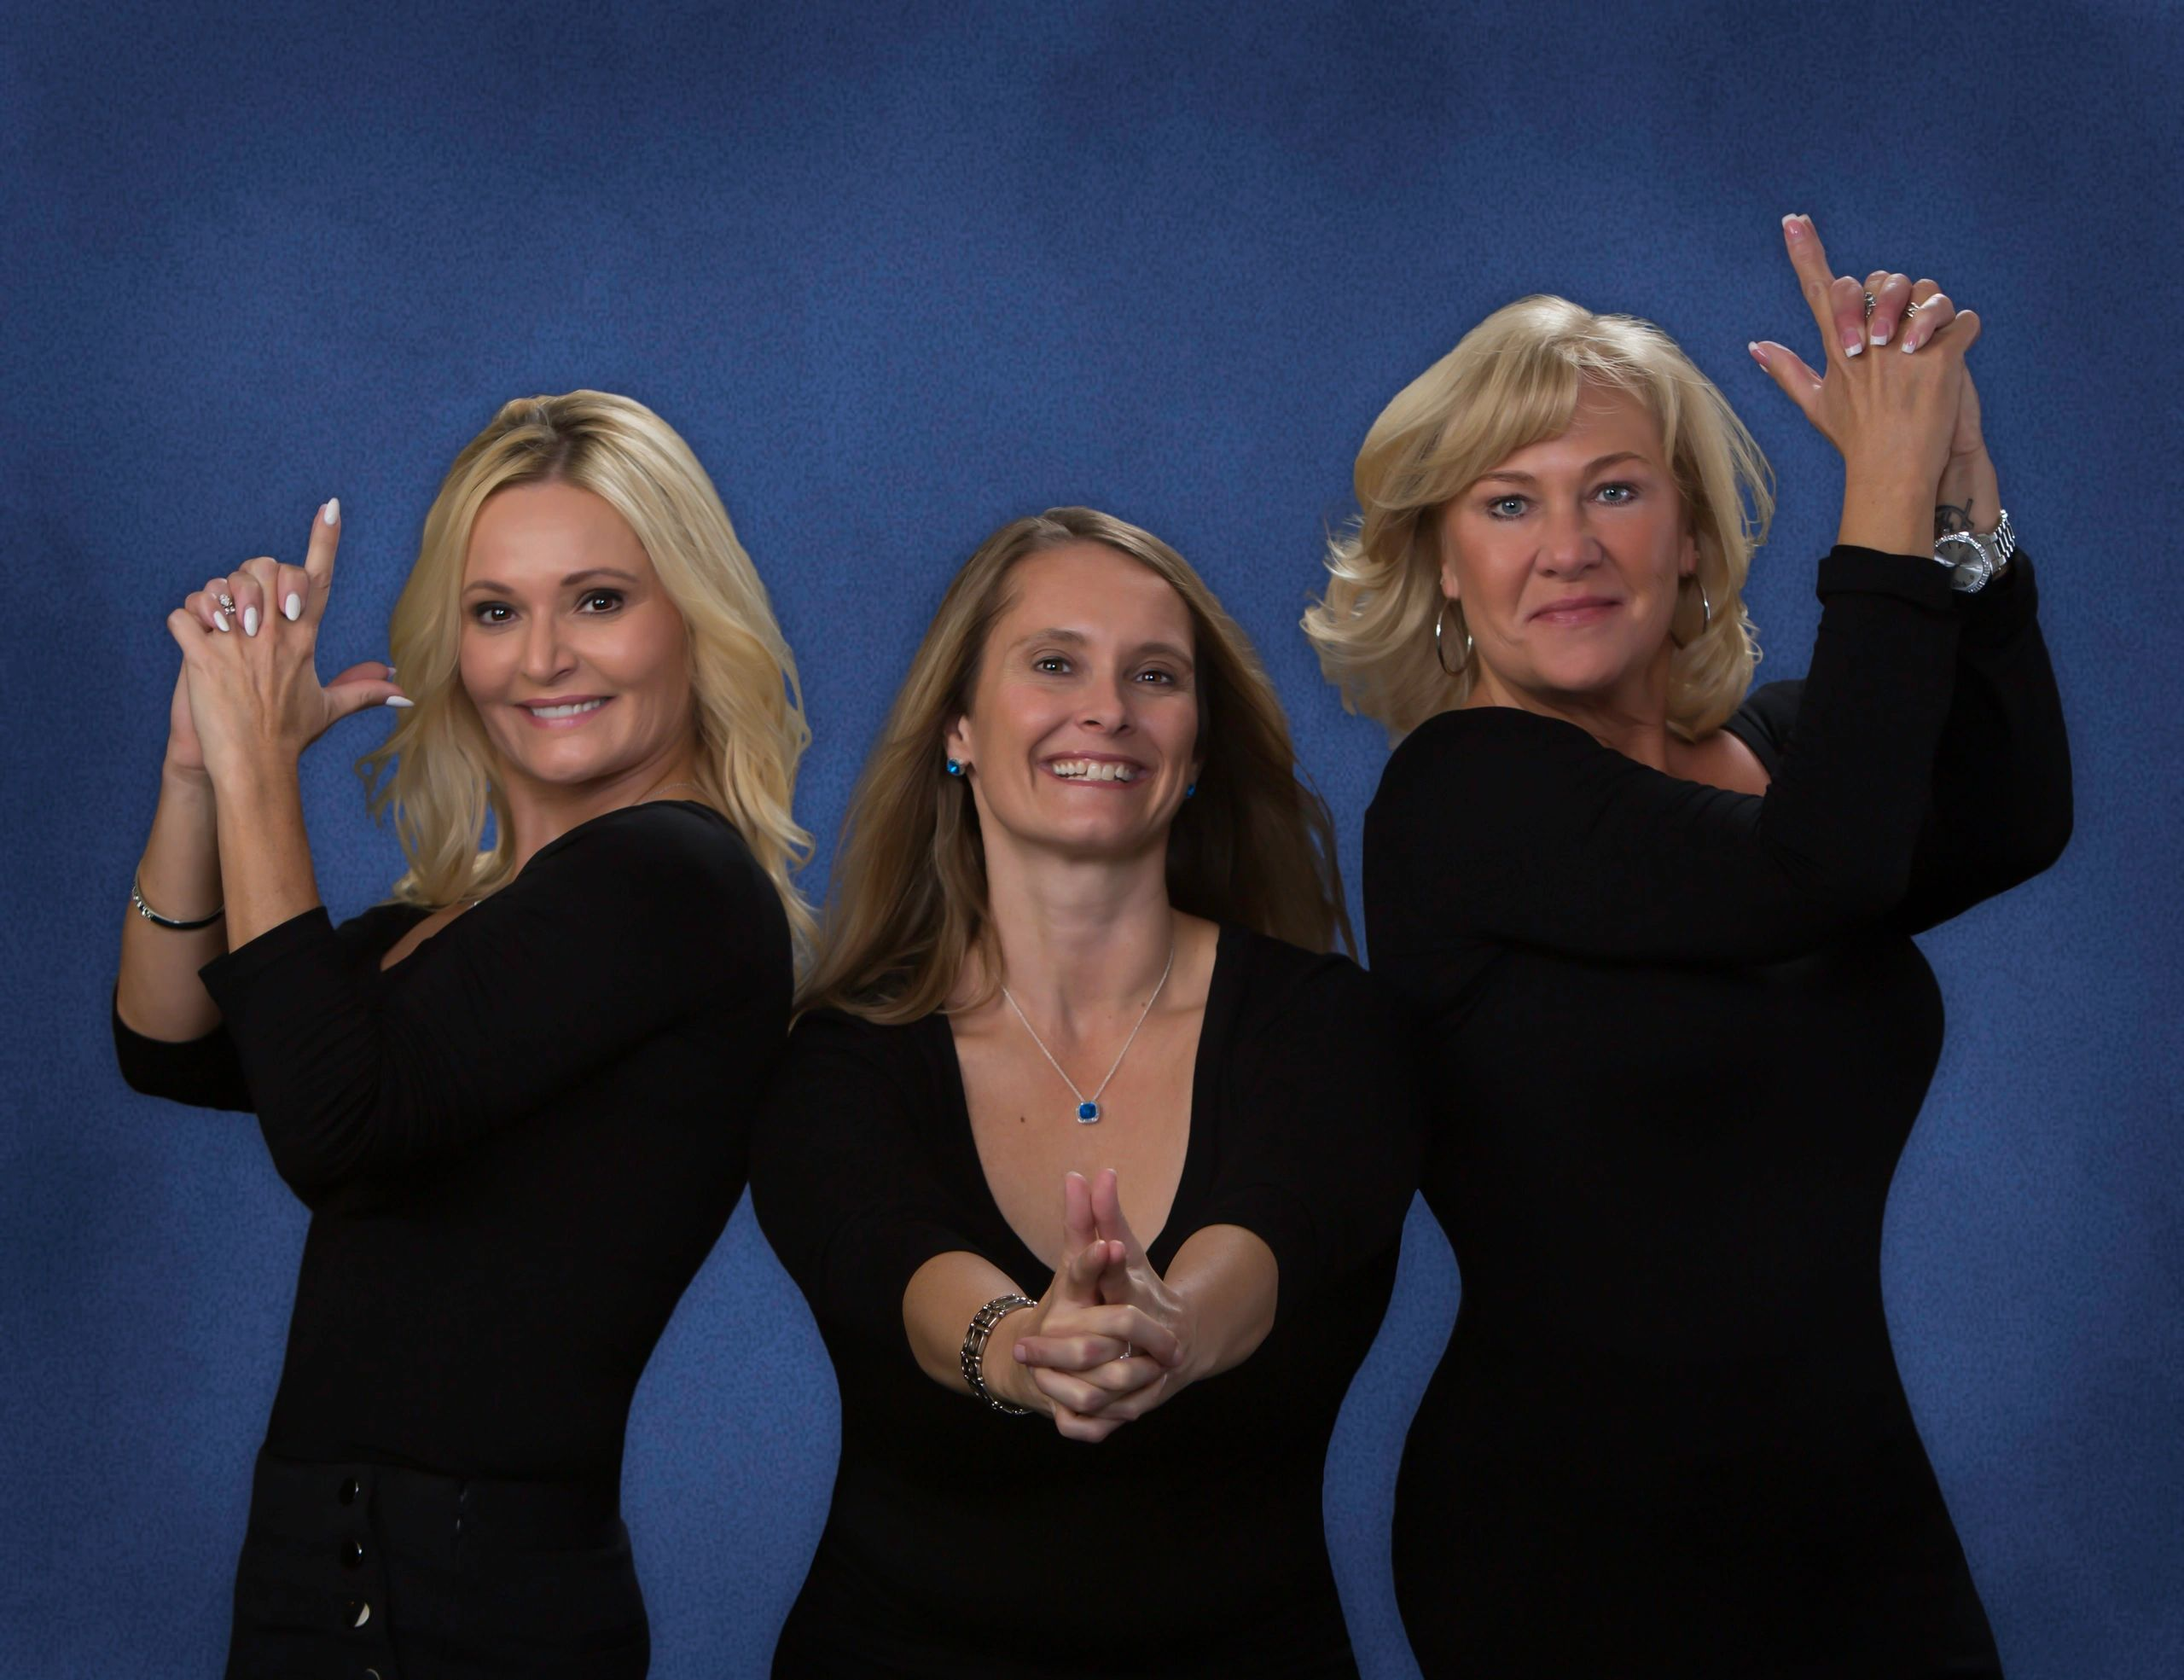 Independent insurance agents of United Insurance Agencies: Heidi, Connie, and Cindy